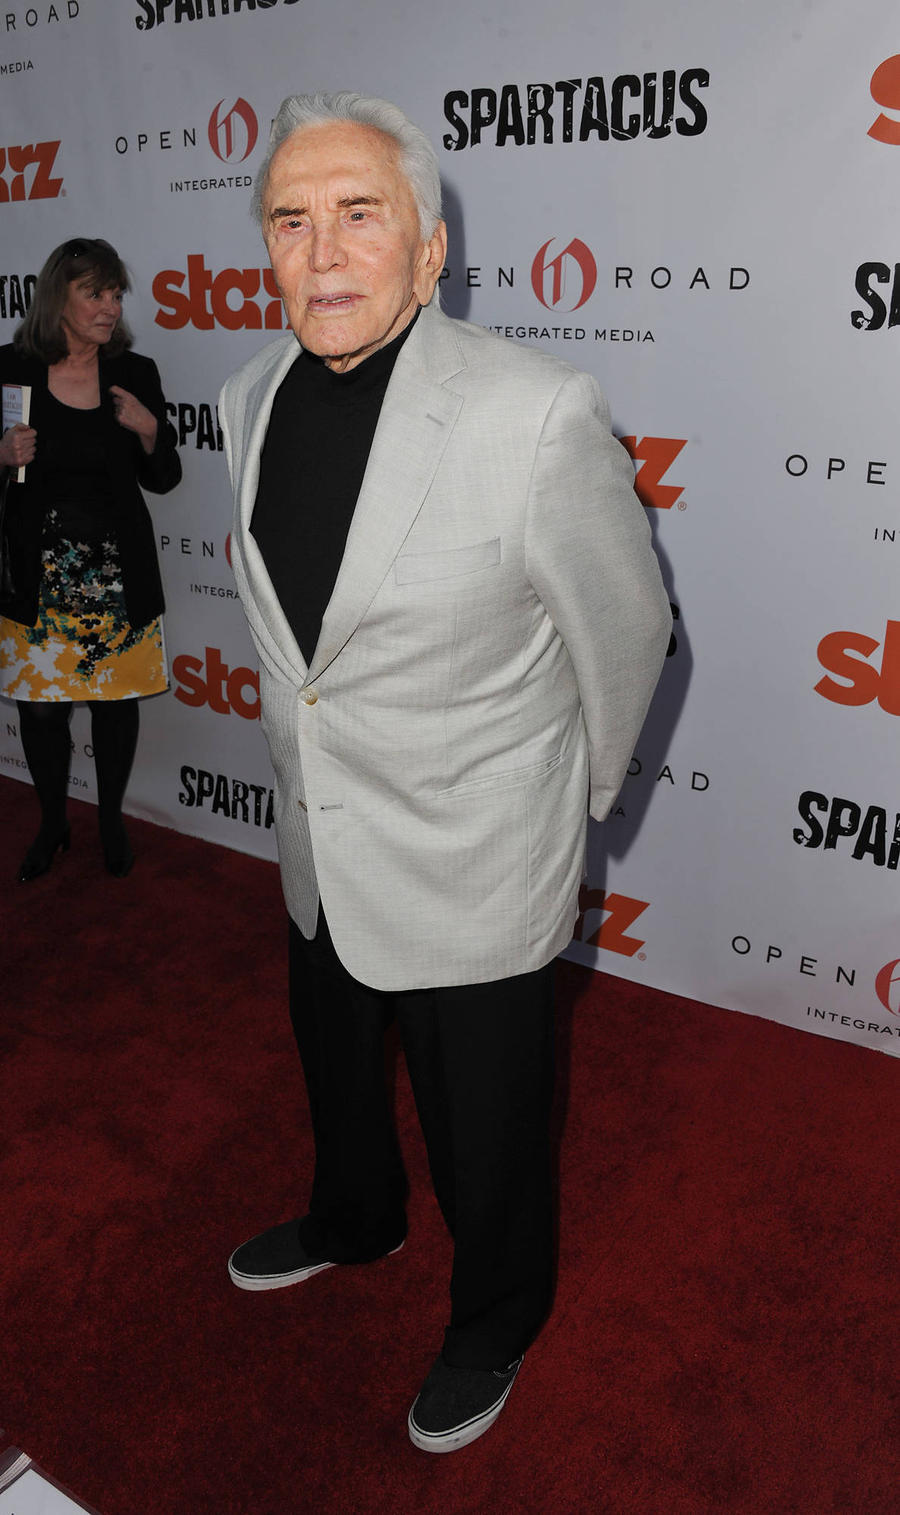 Kirk Douglas Celebrates 100th Birthday With Star-studded Party